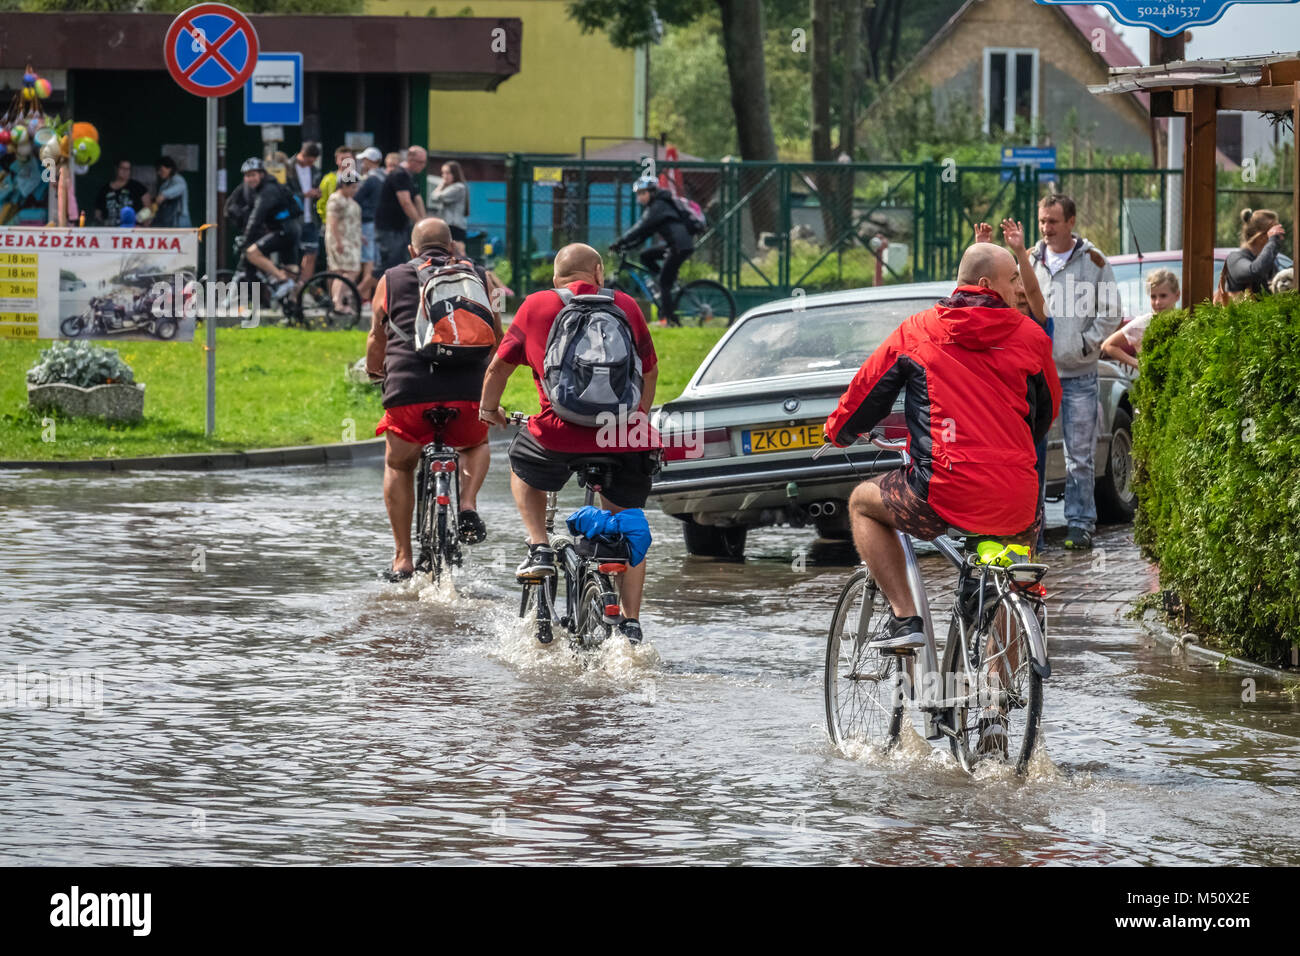 Cycling on a flooded road - Stock Image